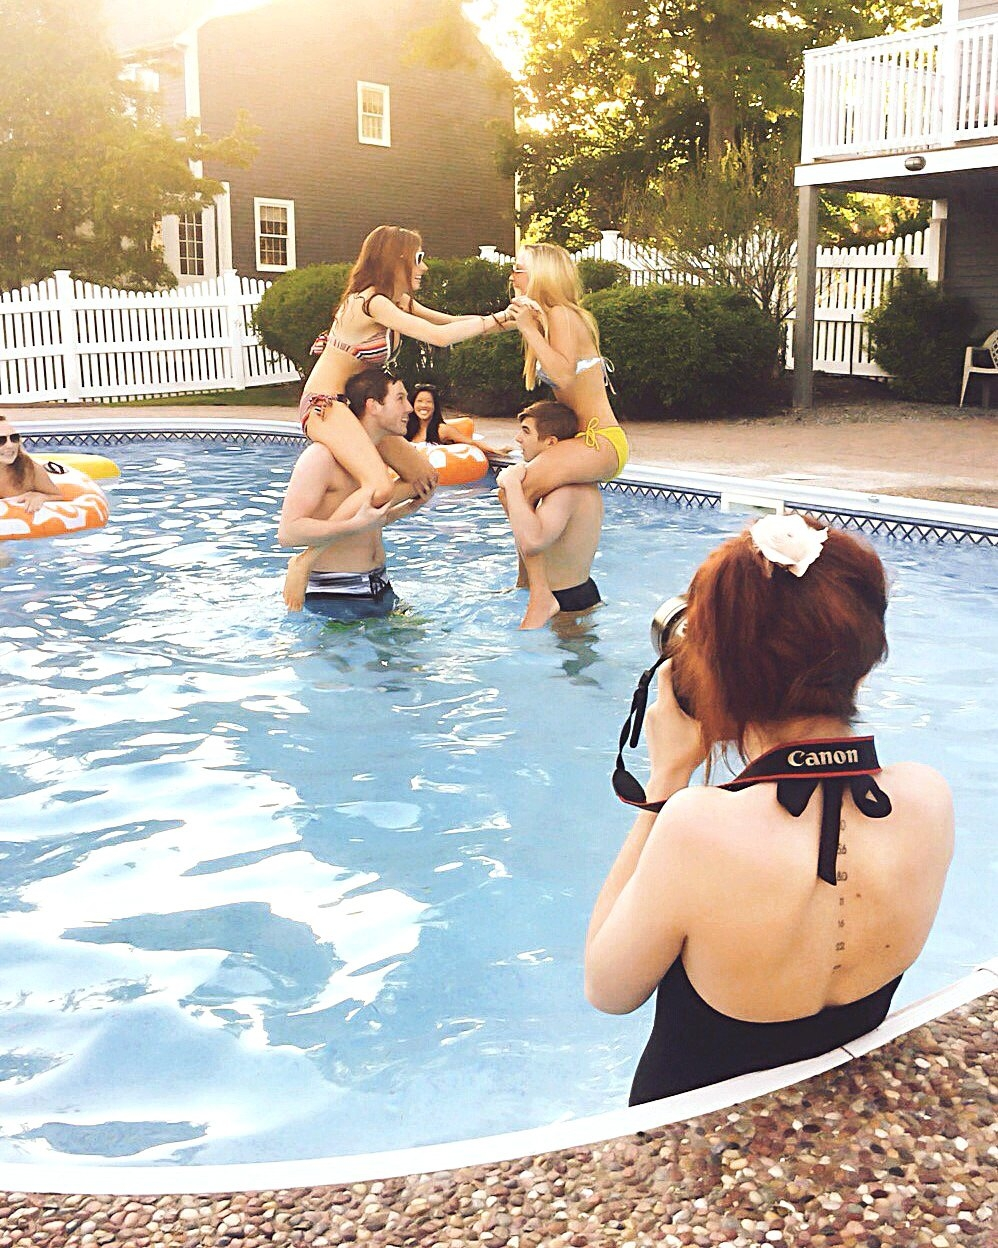 Pool party stock shoot! Sometimes you gotta just jump in.